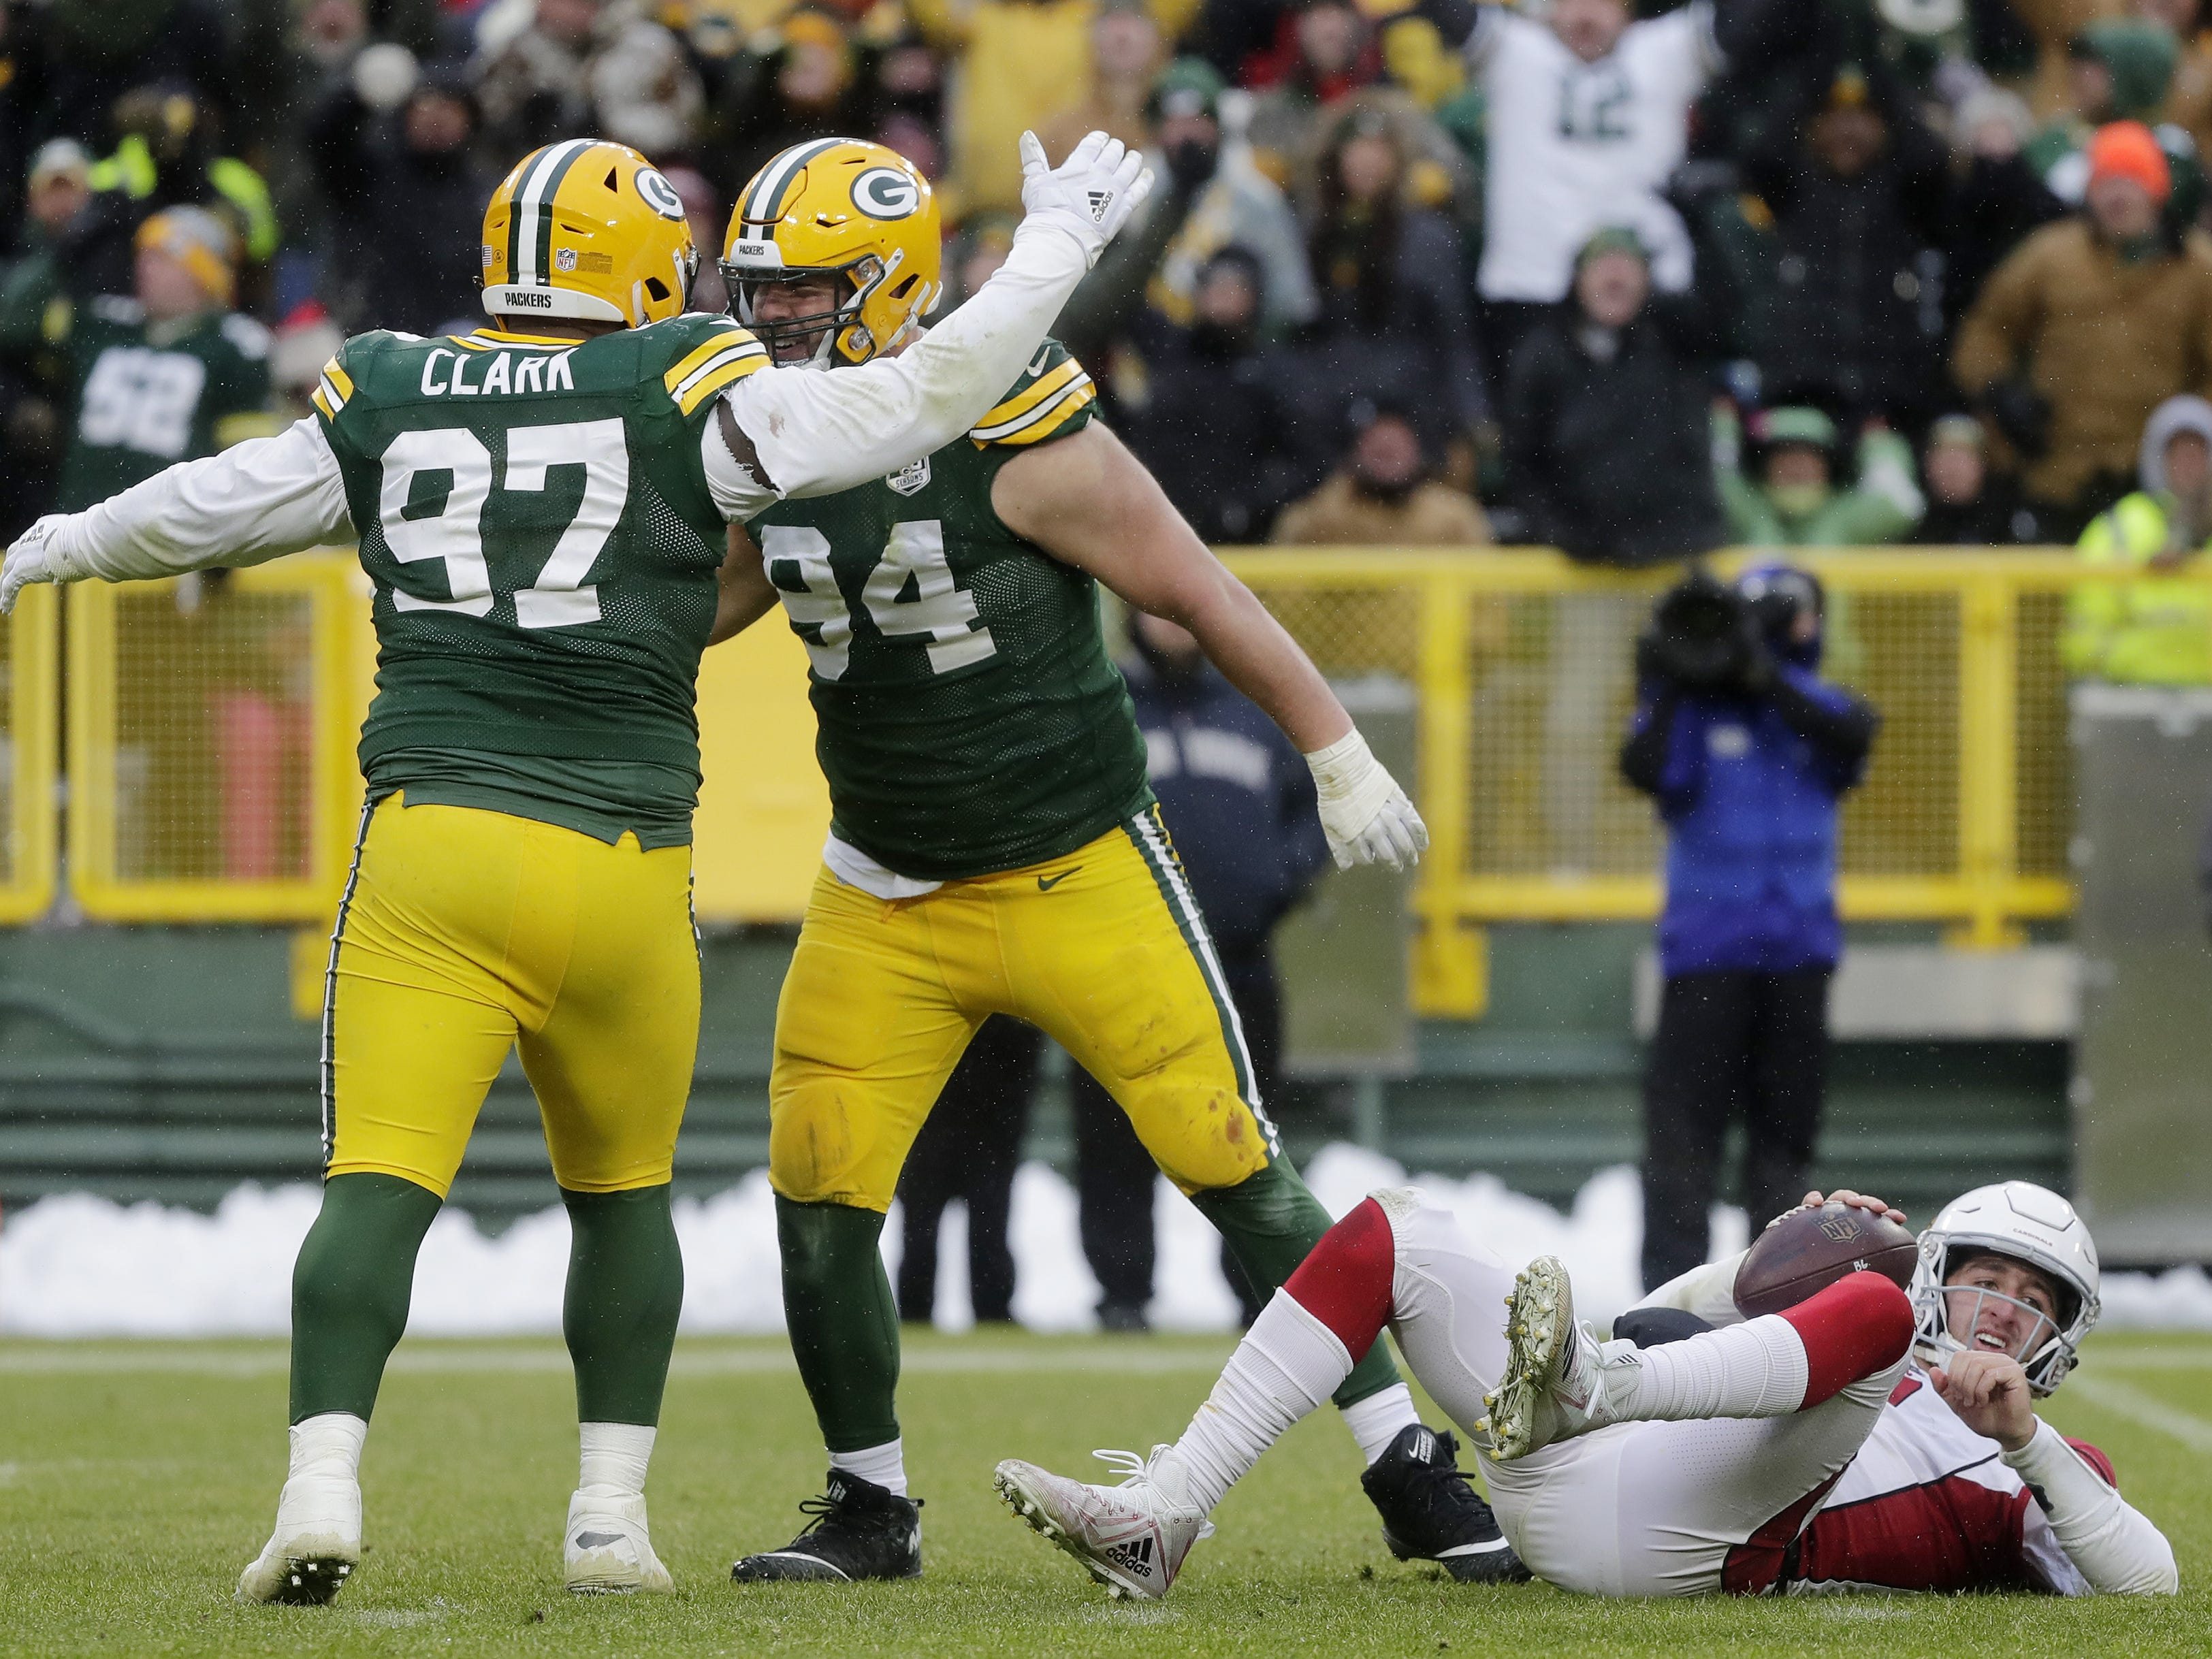 Green Bay Packers defensive end Dean Lowry (94) celebrates with nose tackle Kenny Clark (97) after sacking Arizona Cardinals quarterback Josh Rosen (3) in the fourth quarter at Lambeau Field on Sunday, December 2, 2018 in Green Bay, Wis.